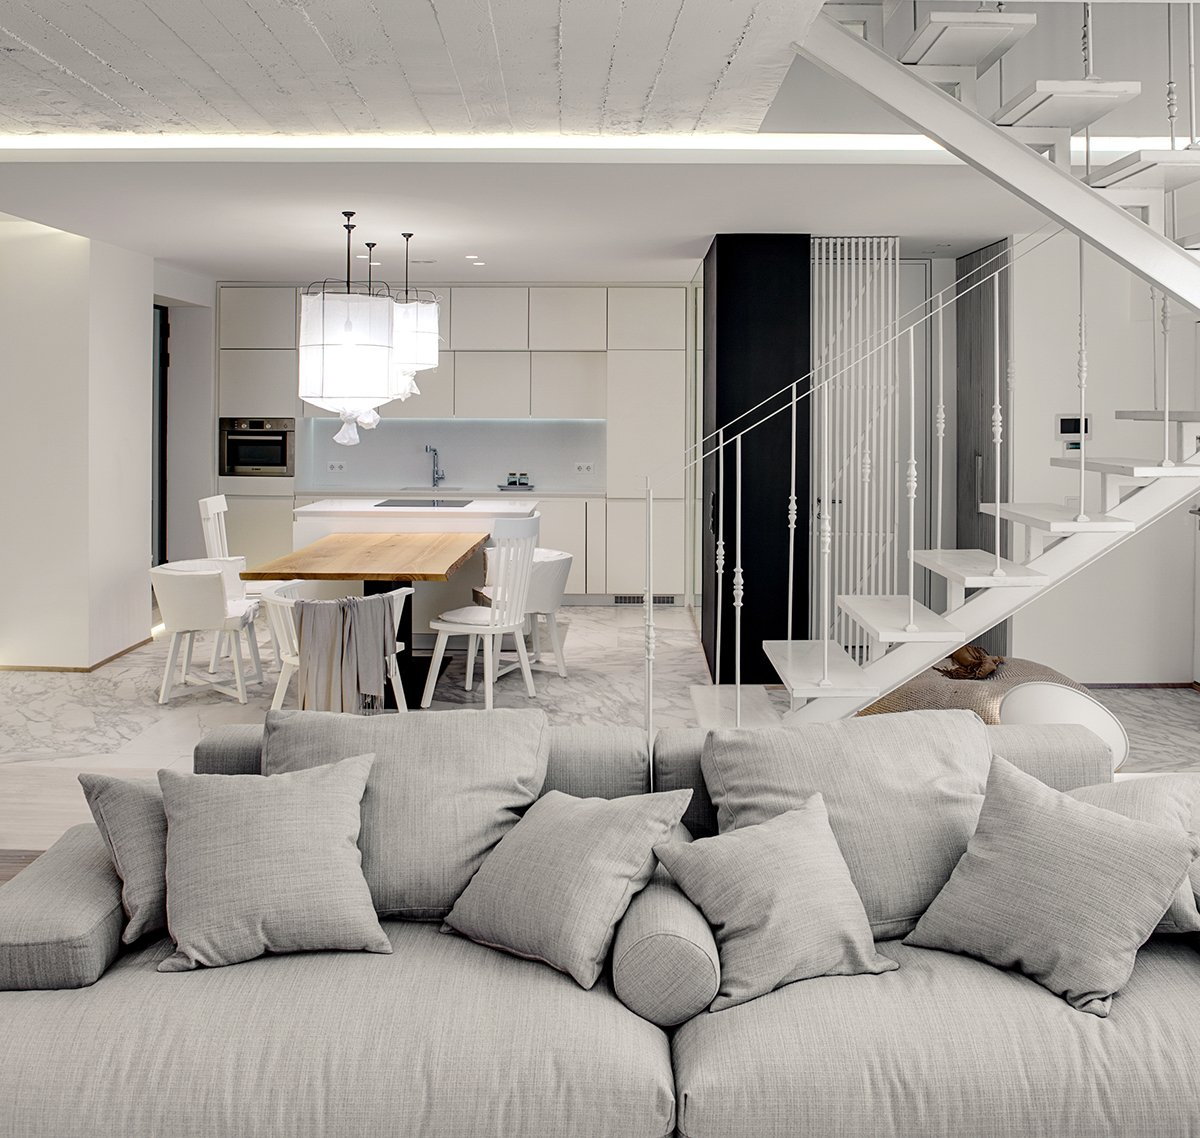 Home Interior Design: A Bright White Home With Organic Details